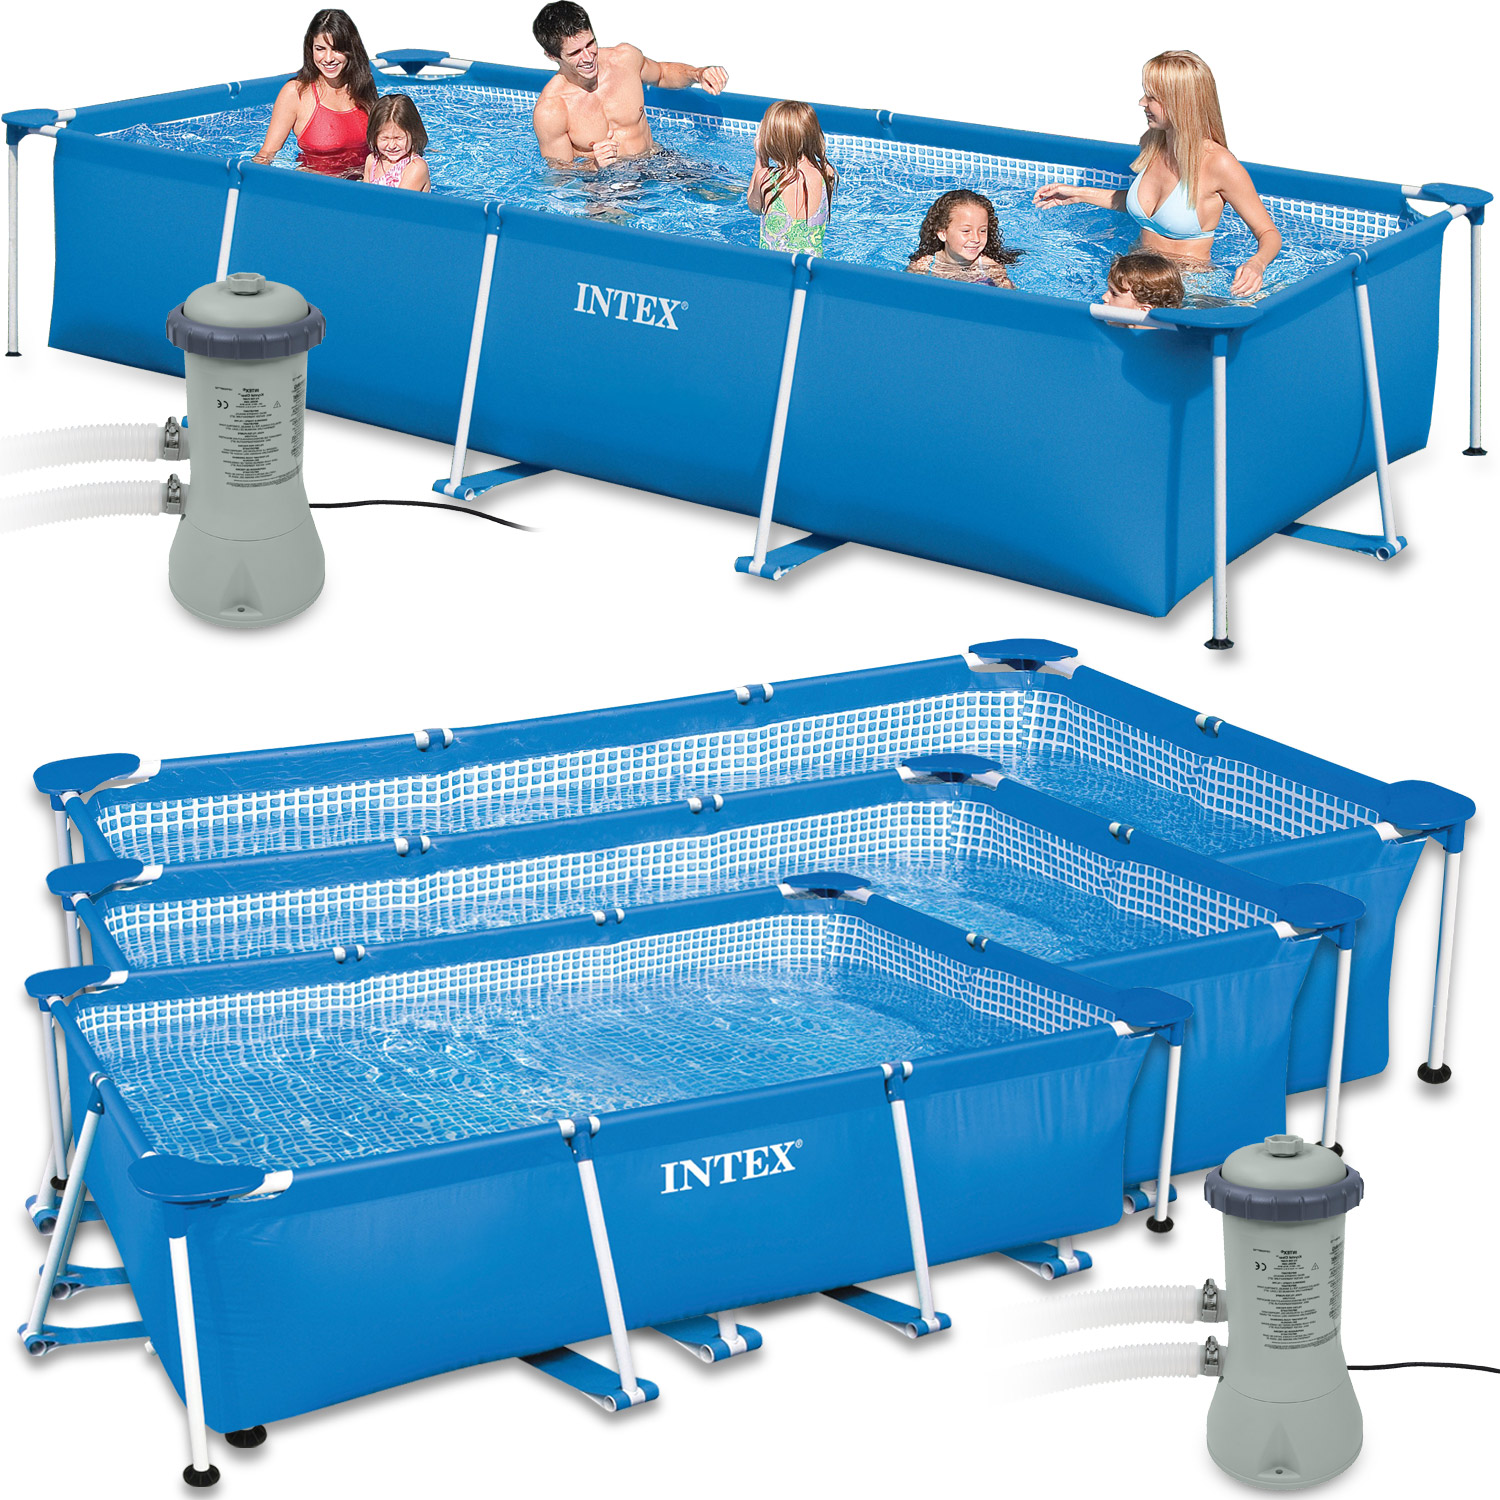 intex set family schwimmbad swimming pool schwimmbecken. Black Bedroom Furniture Sets. Home Design Ideas